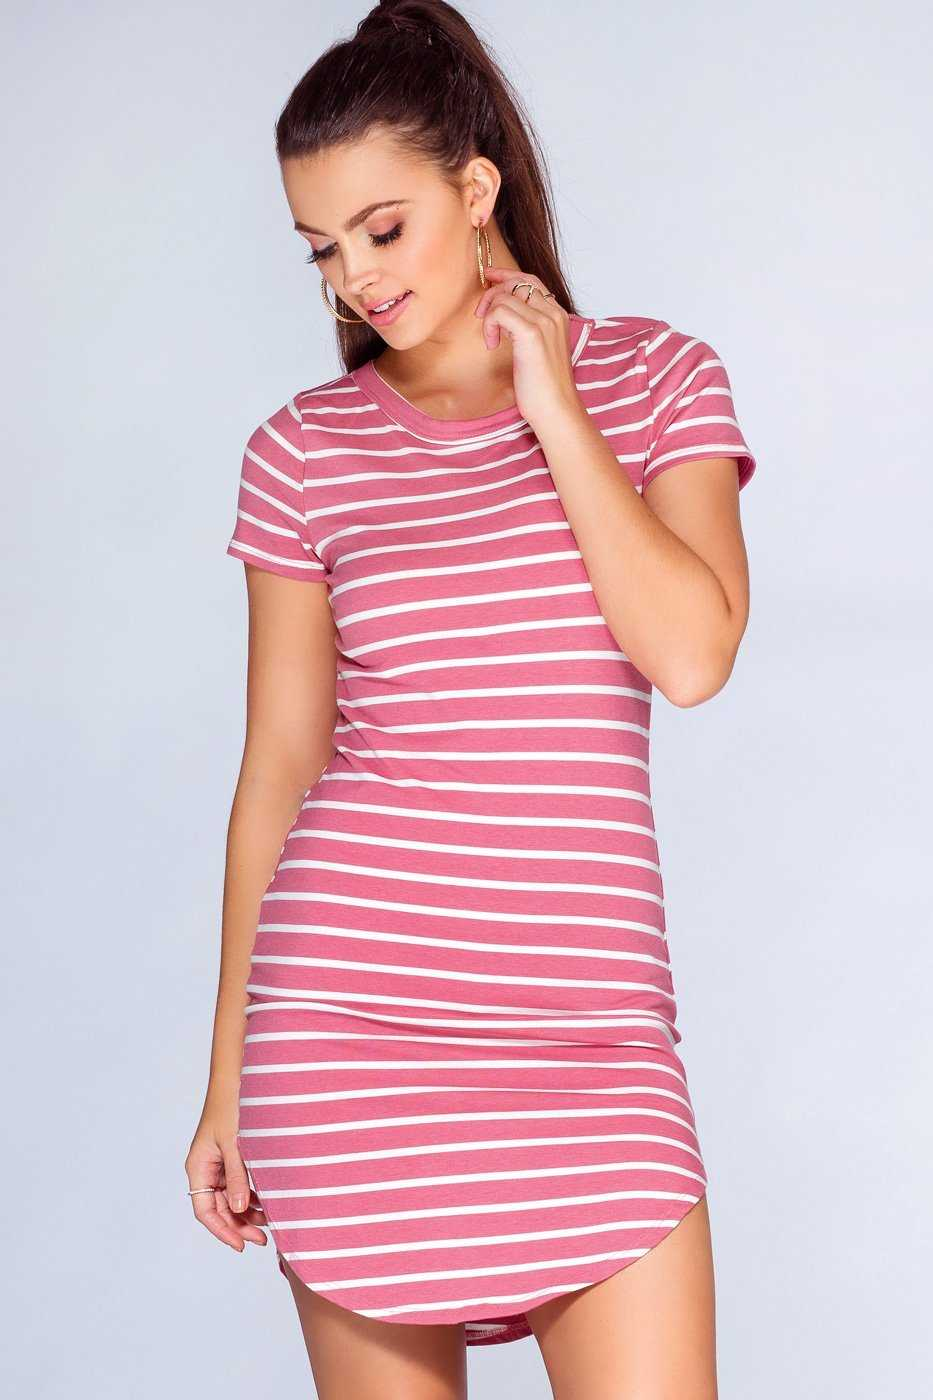 Dresses - Dahlia Basic Dress - Mauve Stripe